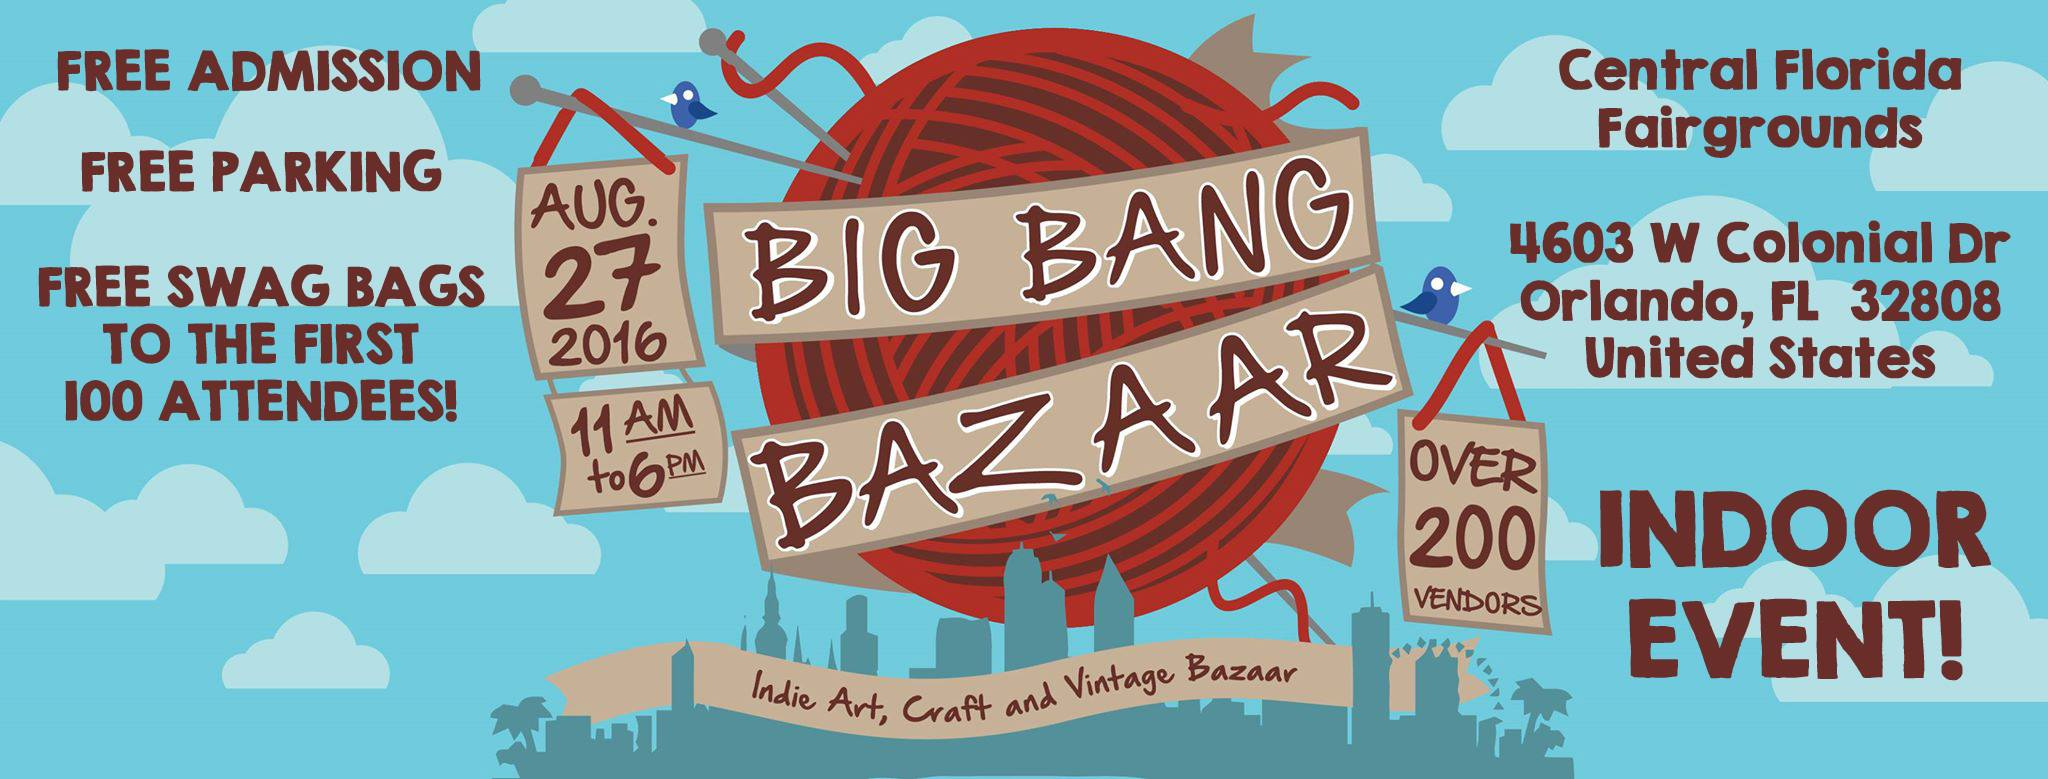 Big Bang Bazaar